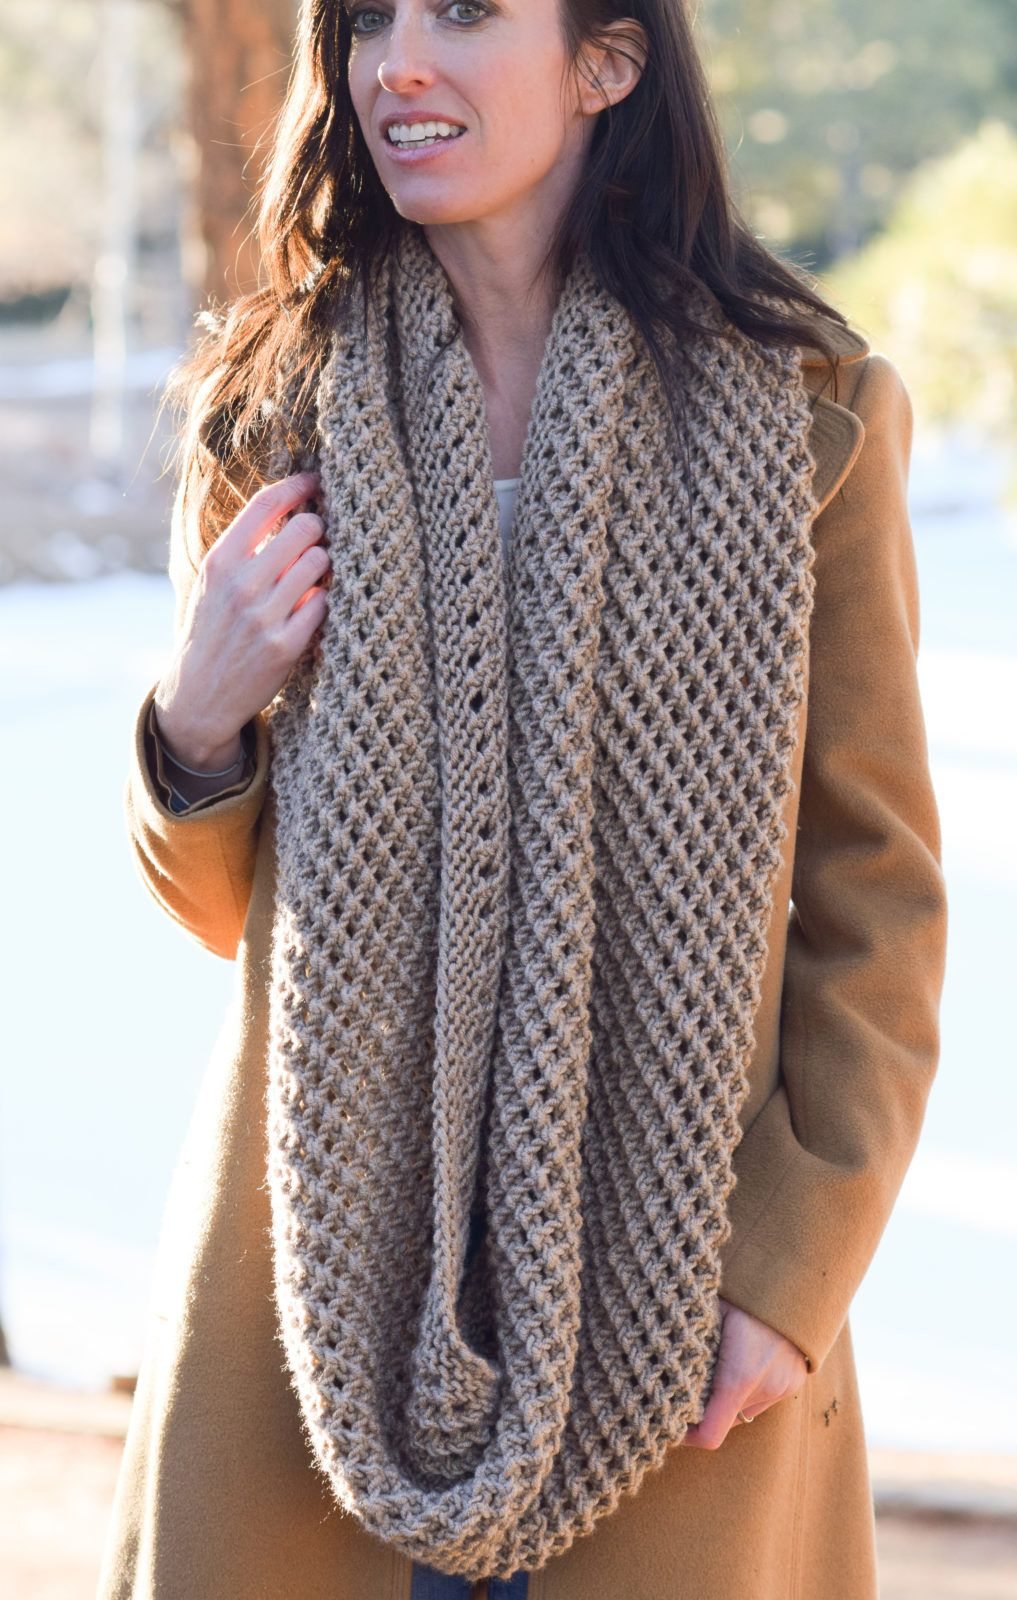 The Traveler Knit Infinicowl Scarf Pattern | Infinity ...